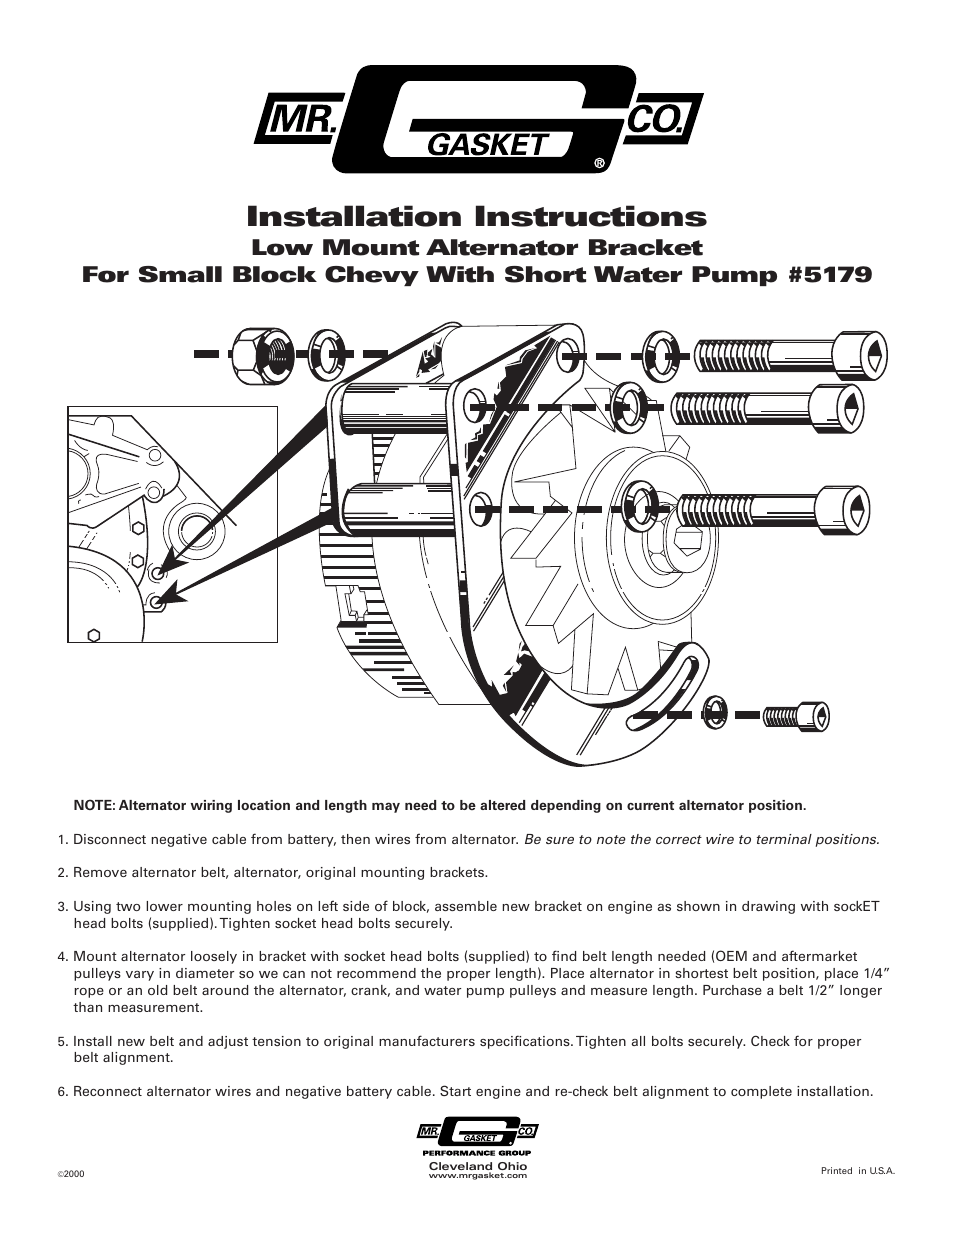 medium resolution of mr gasket 5179 low mount alternator brckt for sbc w swp user manual 1 page